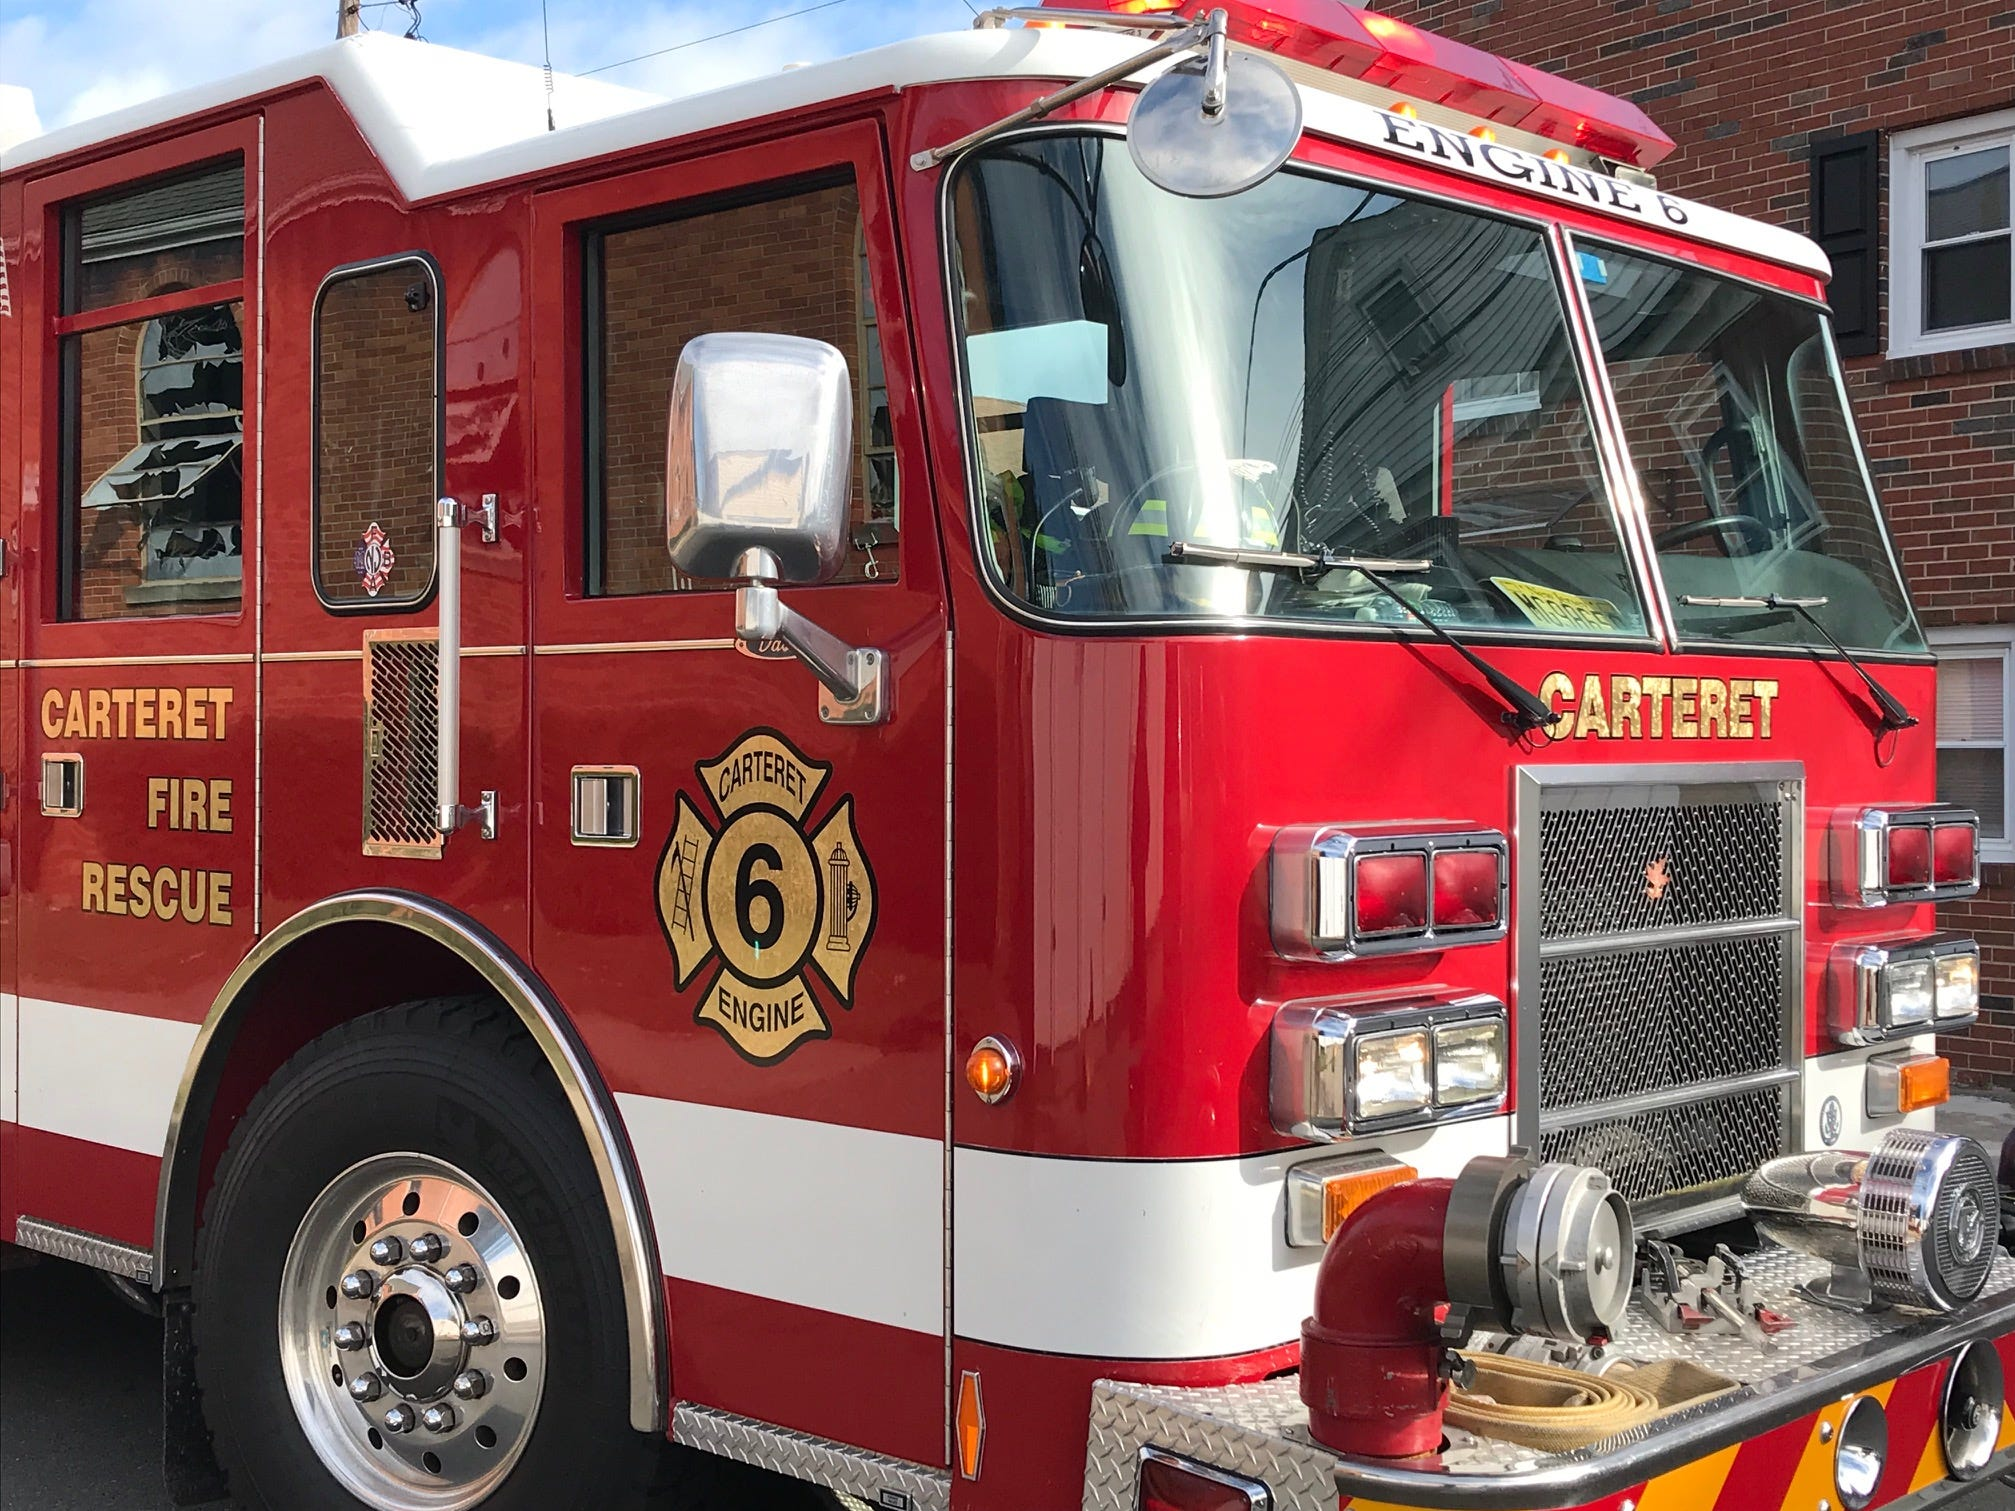 Carteret fire trucks remained at the scene following a two-alarm fire that damaged St. Mary's Ukrainian Catholic Church on Tuesday night.